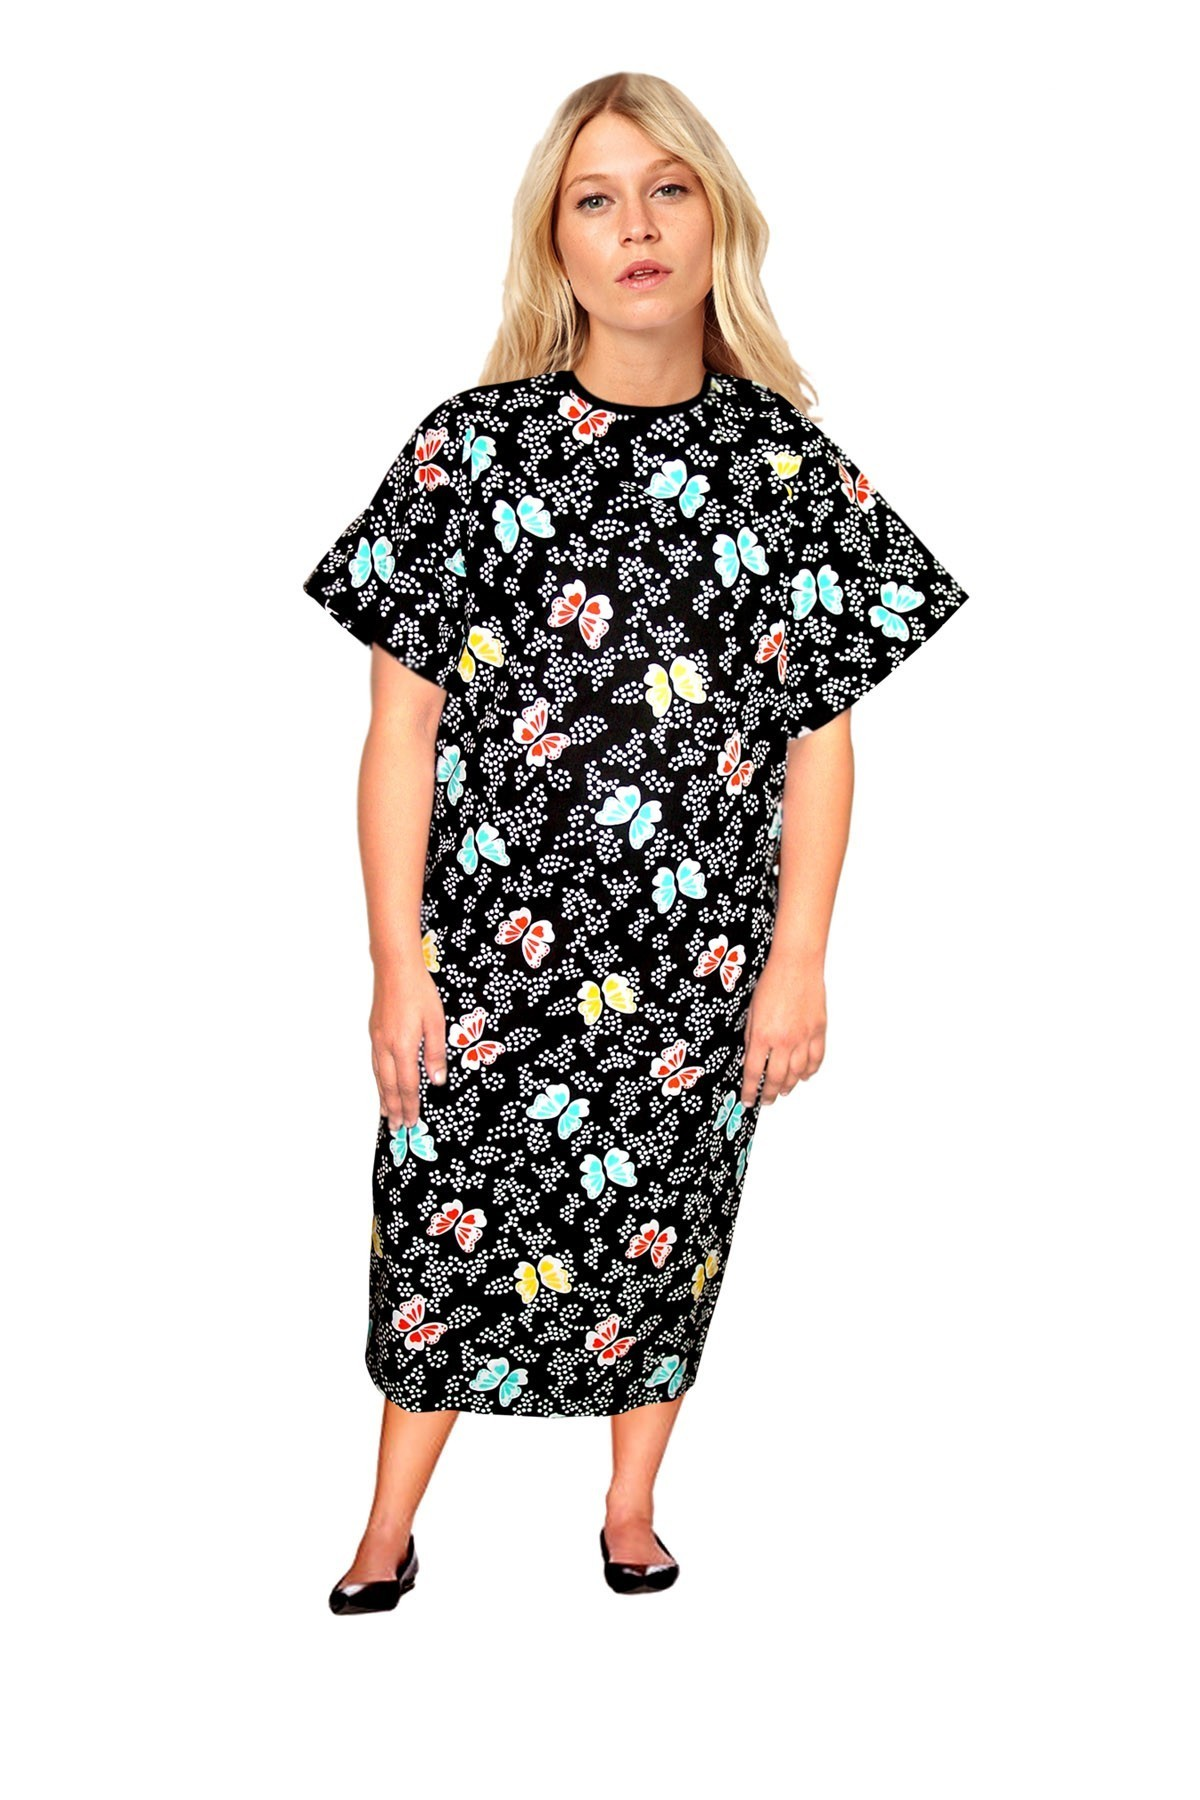 Patient gown half sleeve  printed back open, tie-able  from two points butterfly print Chest 54 Inches Length 45 inches $6.25 and Chest 80 inches Length 49 inches $9.25